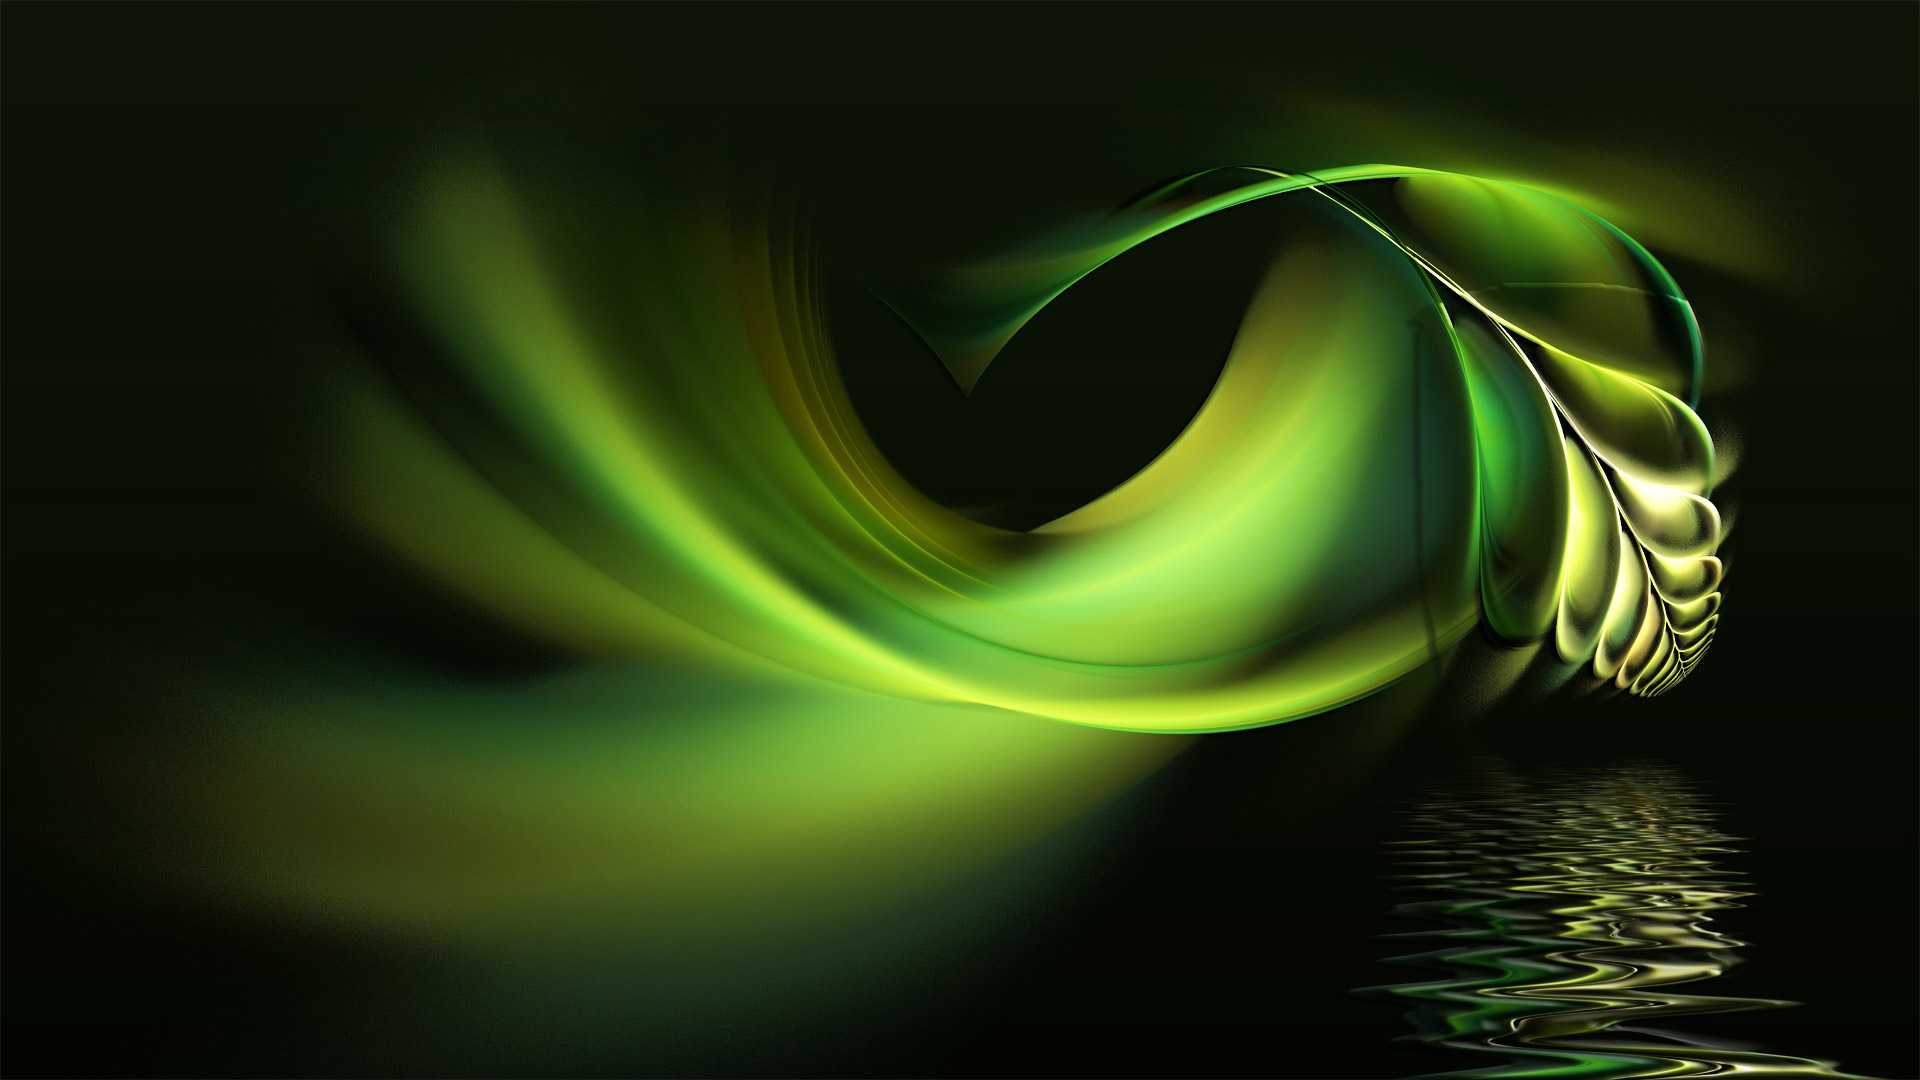 hd wallpaper abstract green wallpapers55com   Best Wallpapers for 1920x1080